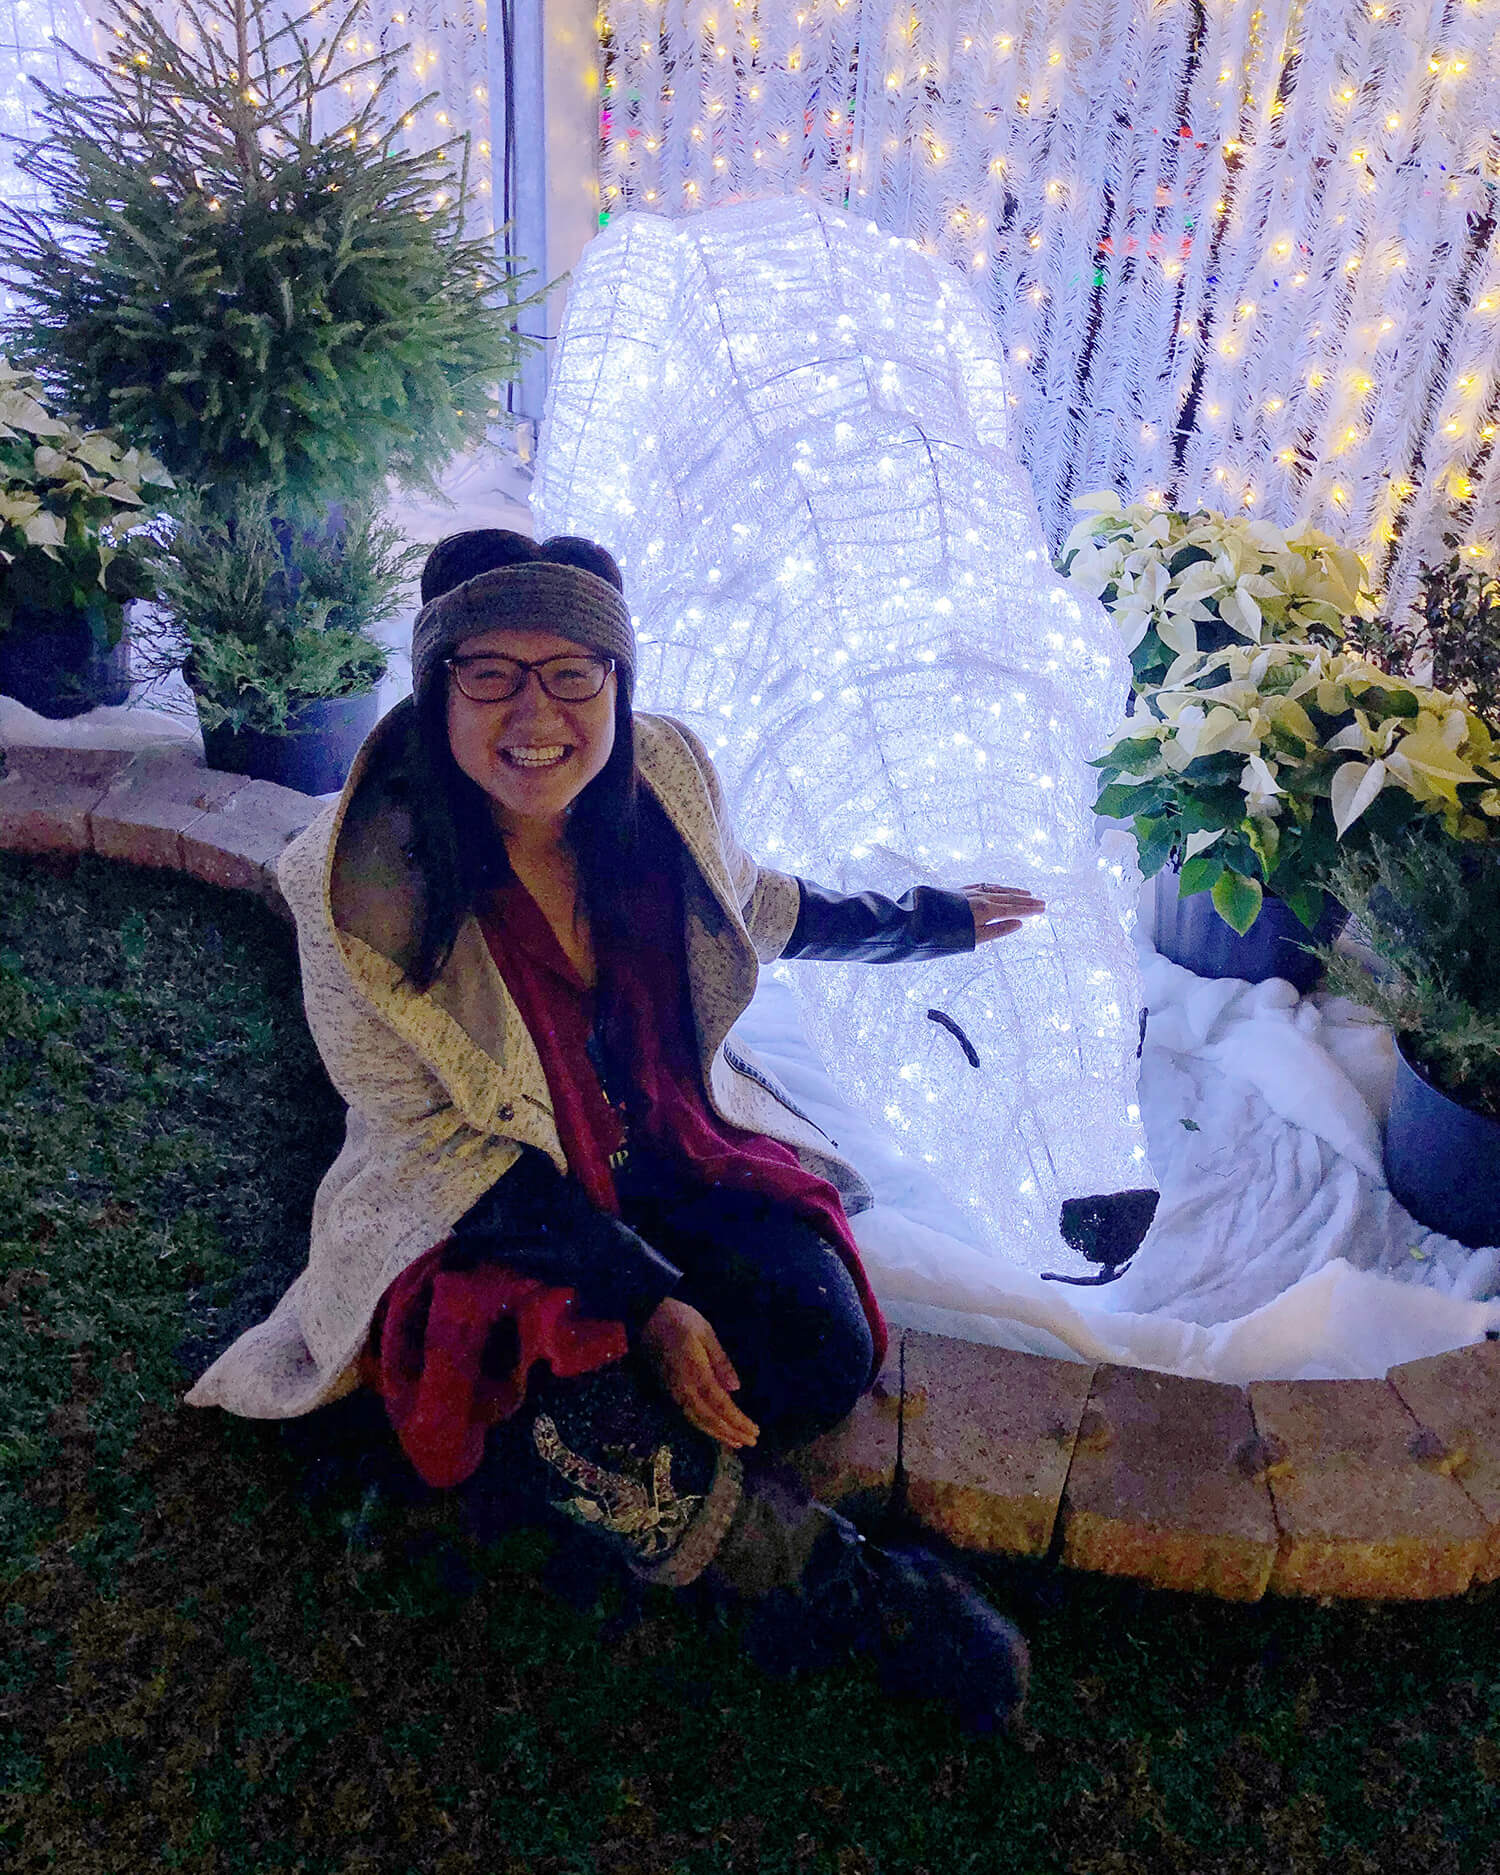 Glow Gardens Edmonton Christmas Festive Instagrammable Photos Enjoy Centre